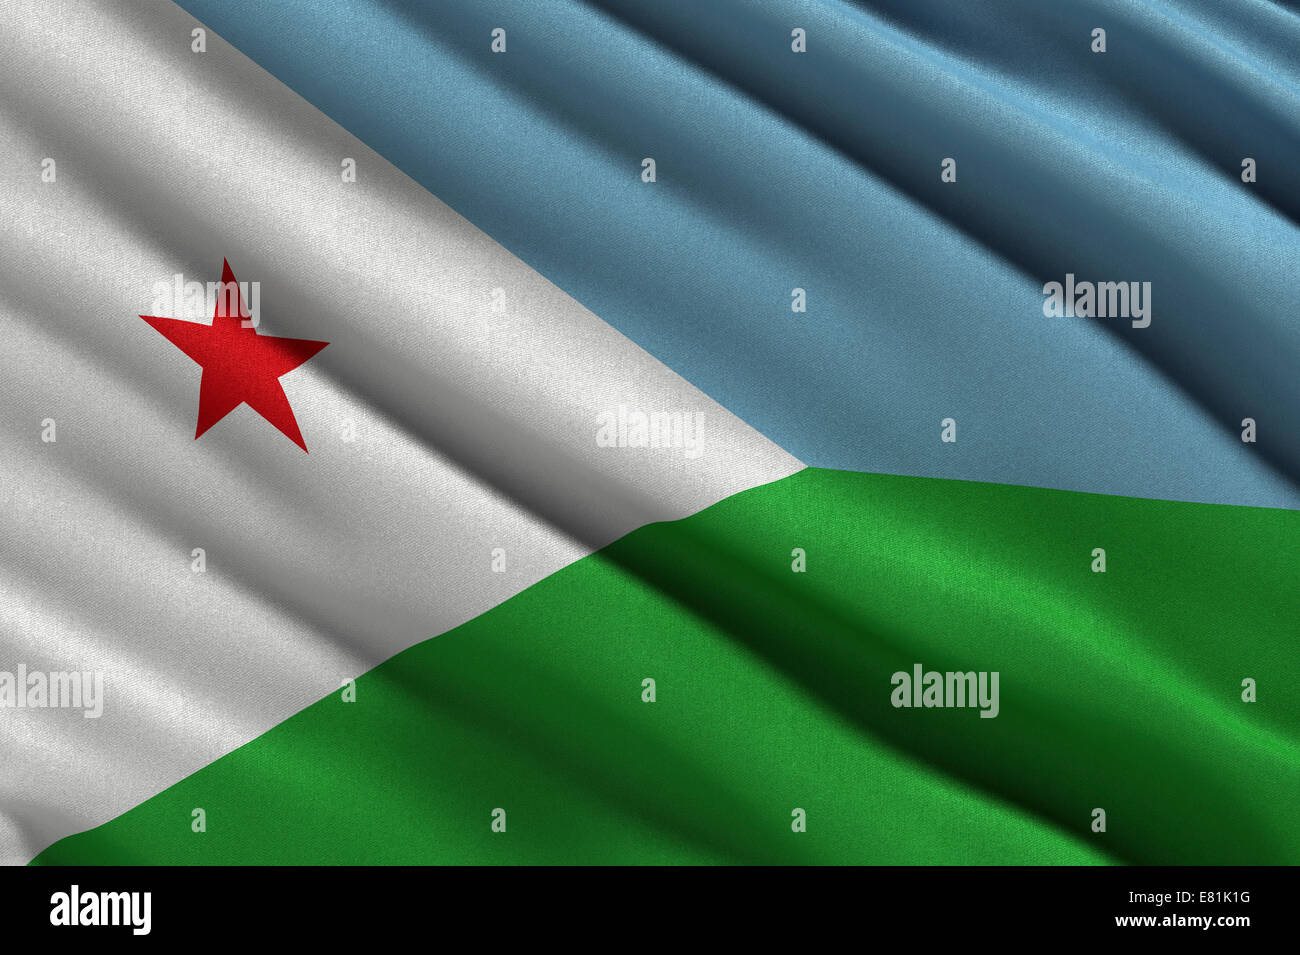 Flag of Djibouti waving in the wind - Stock Image